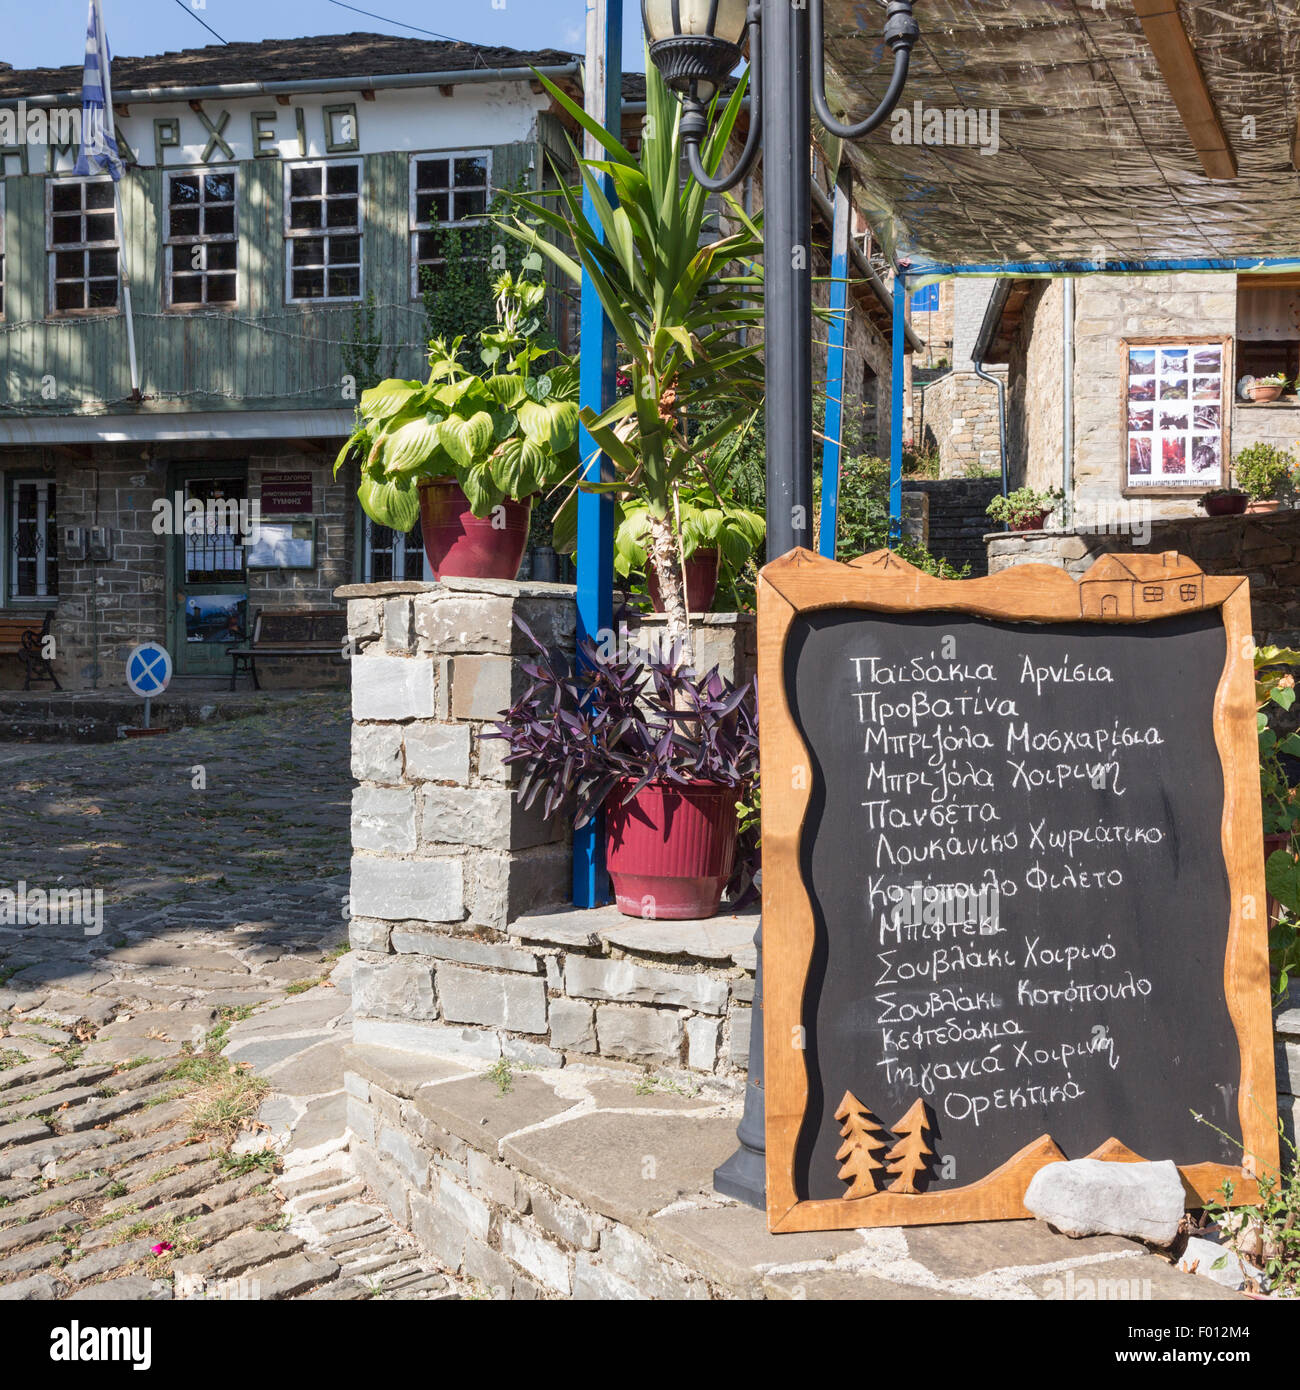 Menu on chalkboard in Tsepelovo, one of the stone villages of Zagoria Greece - Stock Image